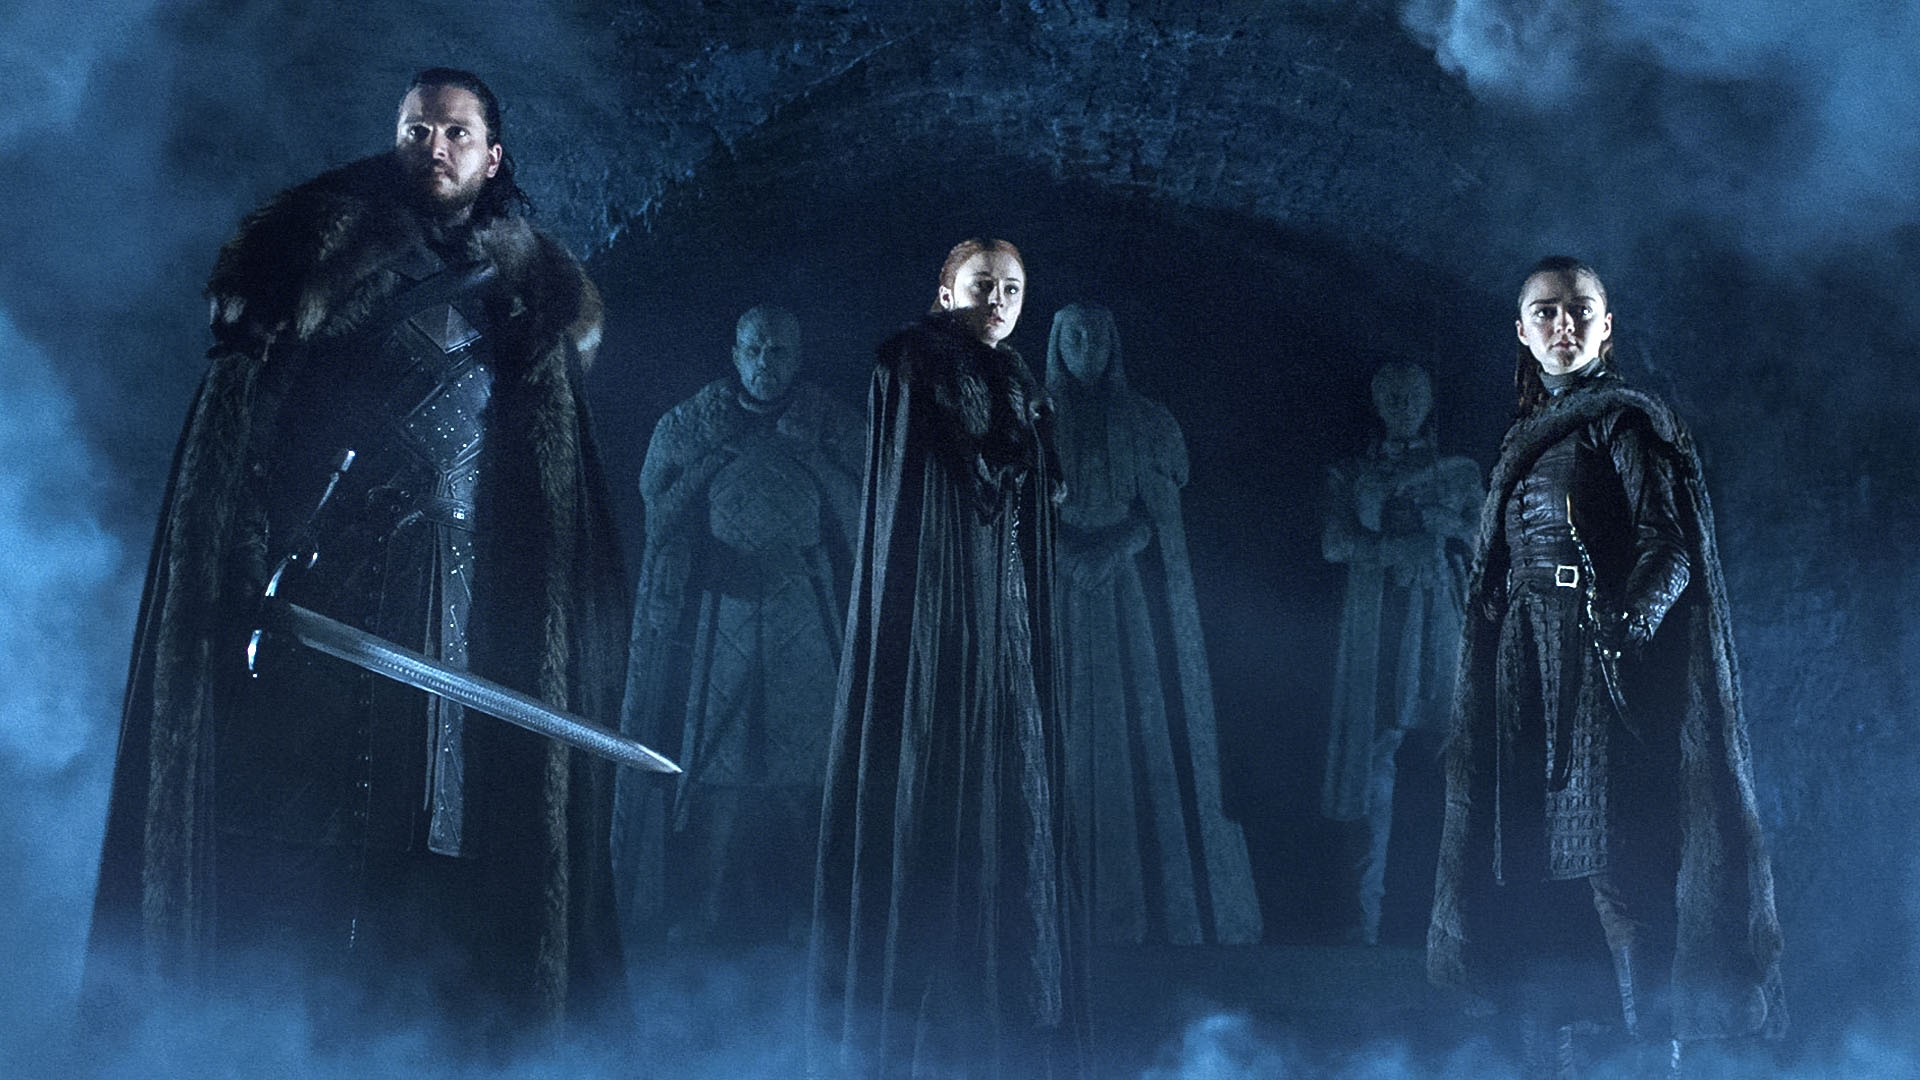 How To Watch Game Of Throne Live Online In India, US, UK